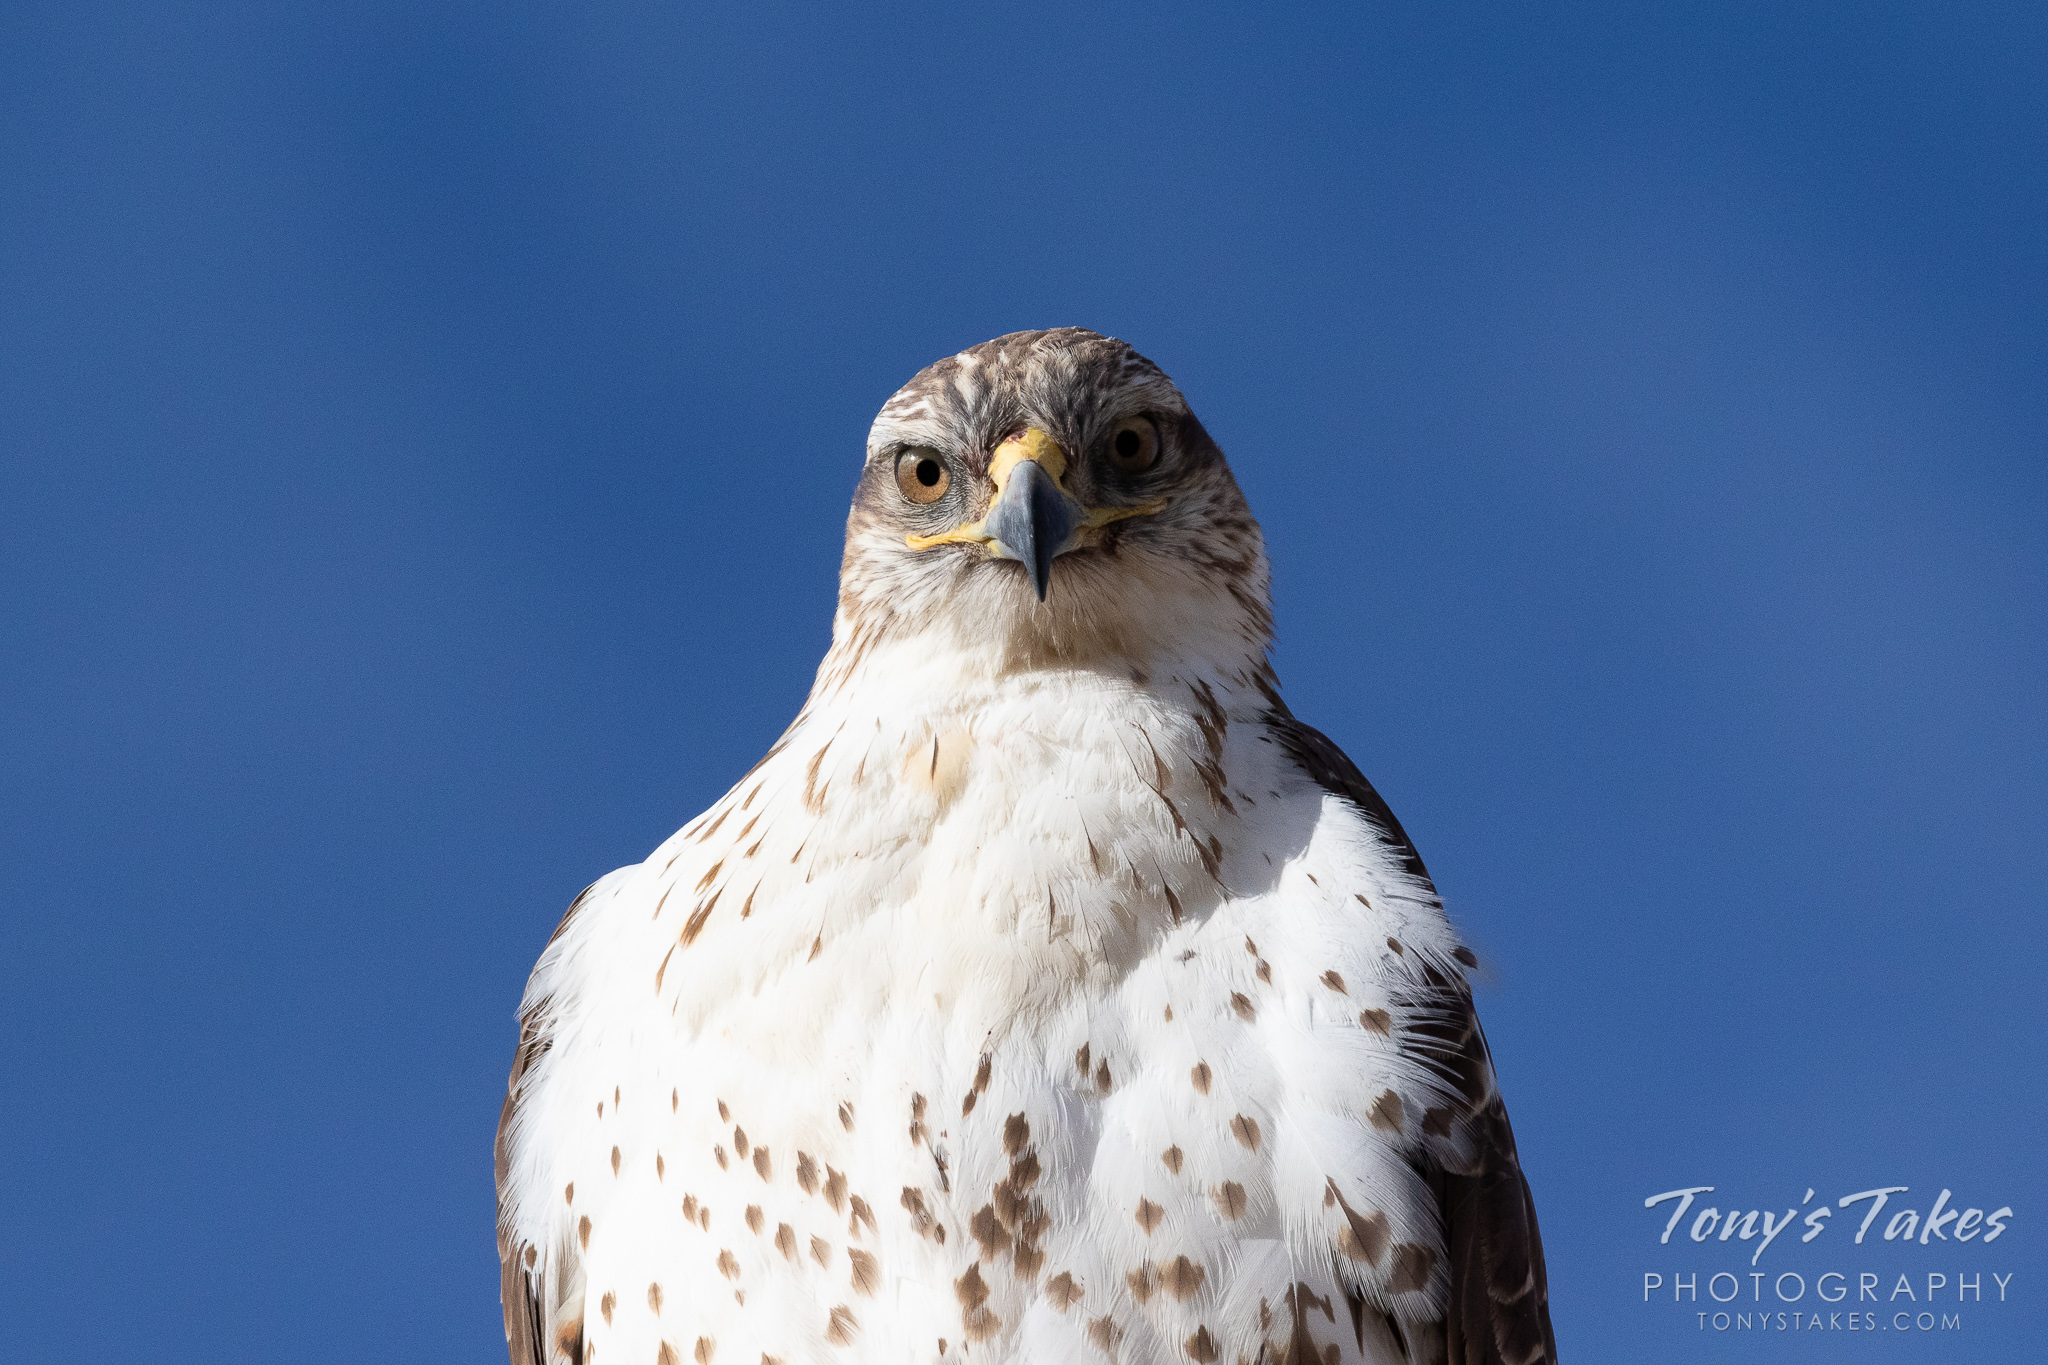 A ferruginous hawk stays focused on the photographer. (© Tony's Takes)